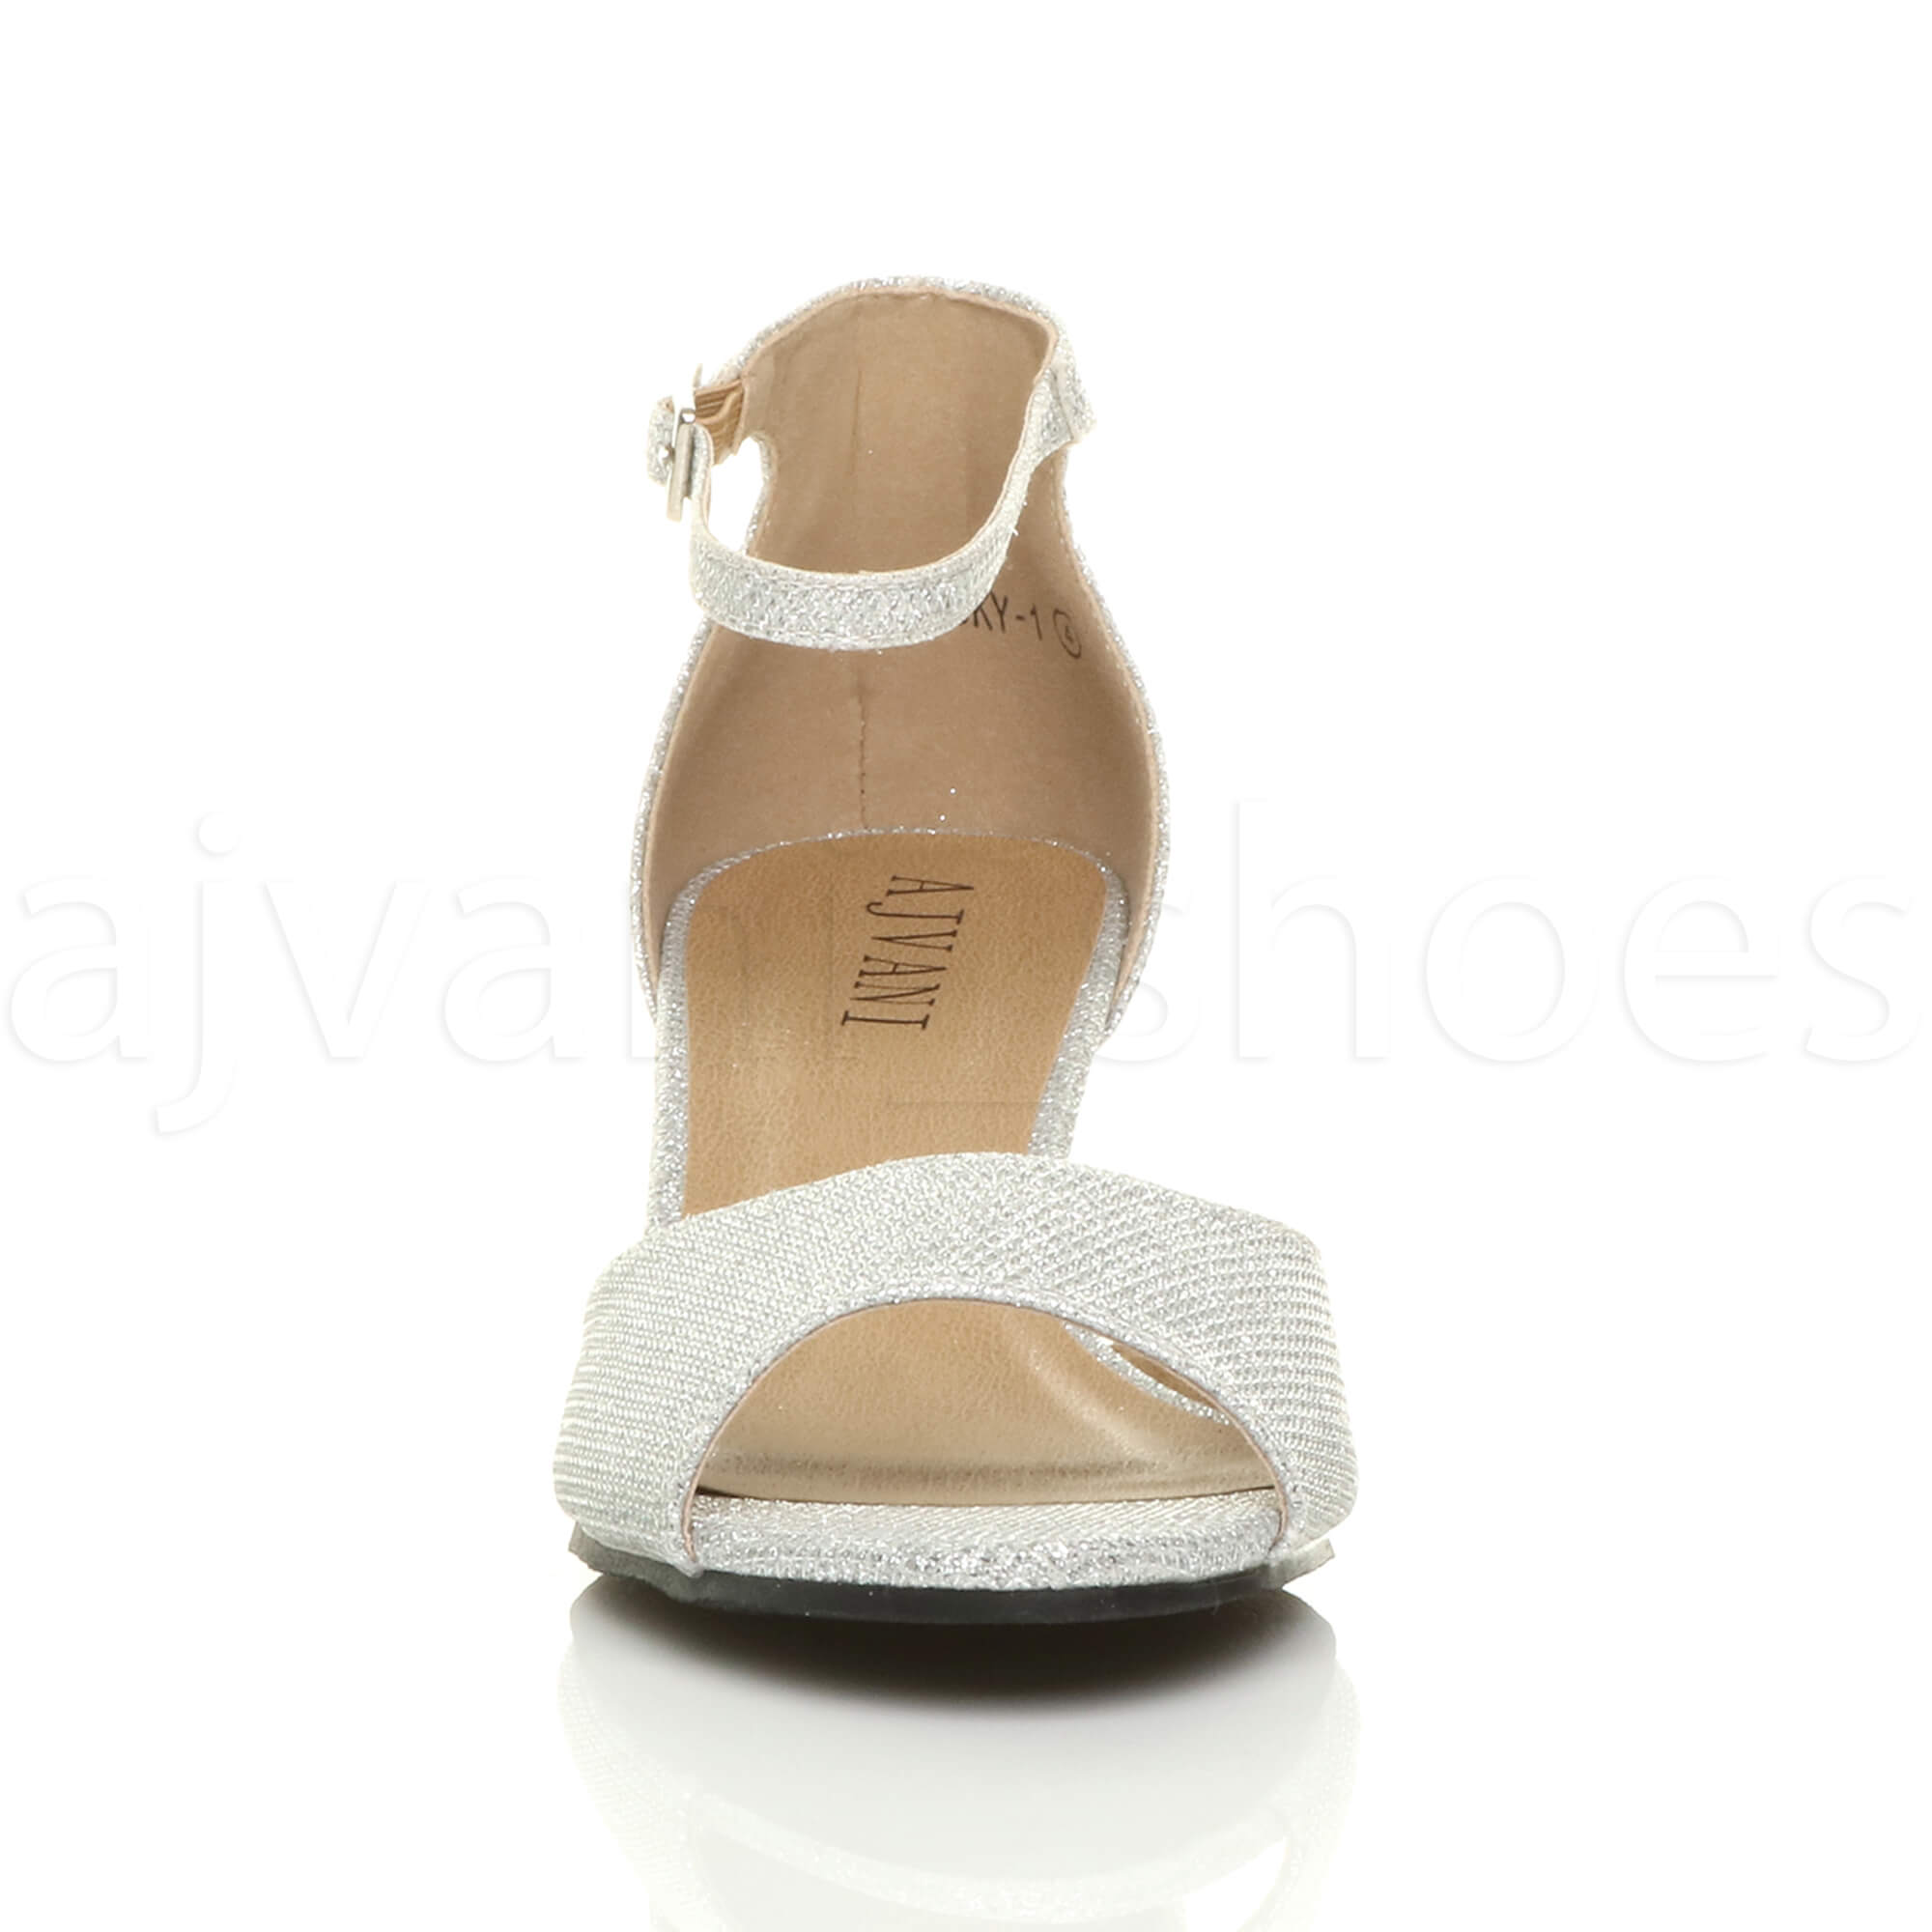 WOMENS-LADIES-LOW-MID-WEDGE-HEEL-ANKLE-STRAP-SMART-CASUAL-EVENING-SANDALS-SIZE thumbnail 143